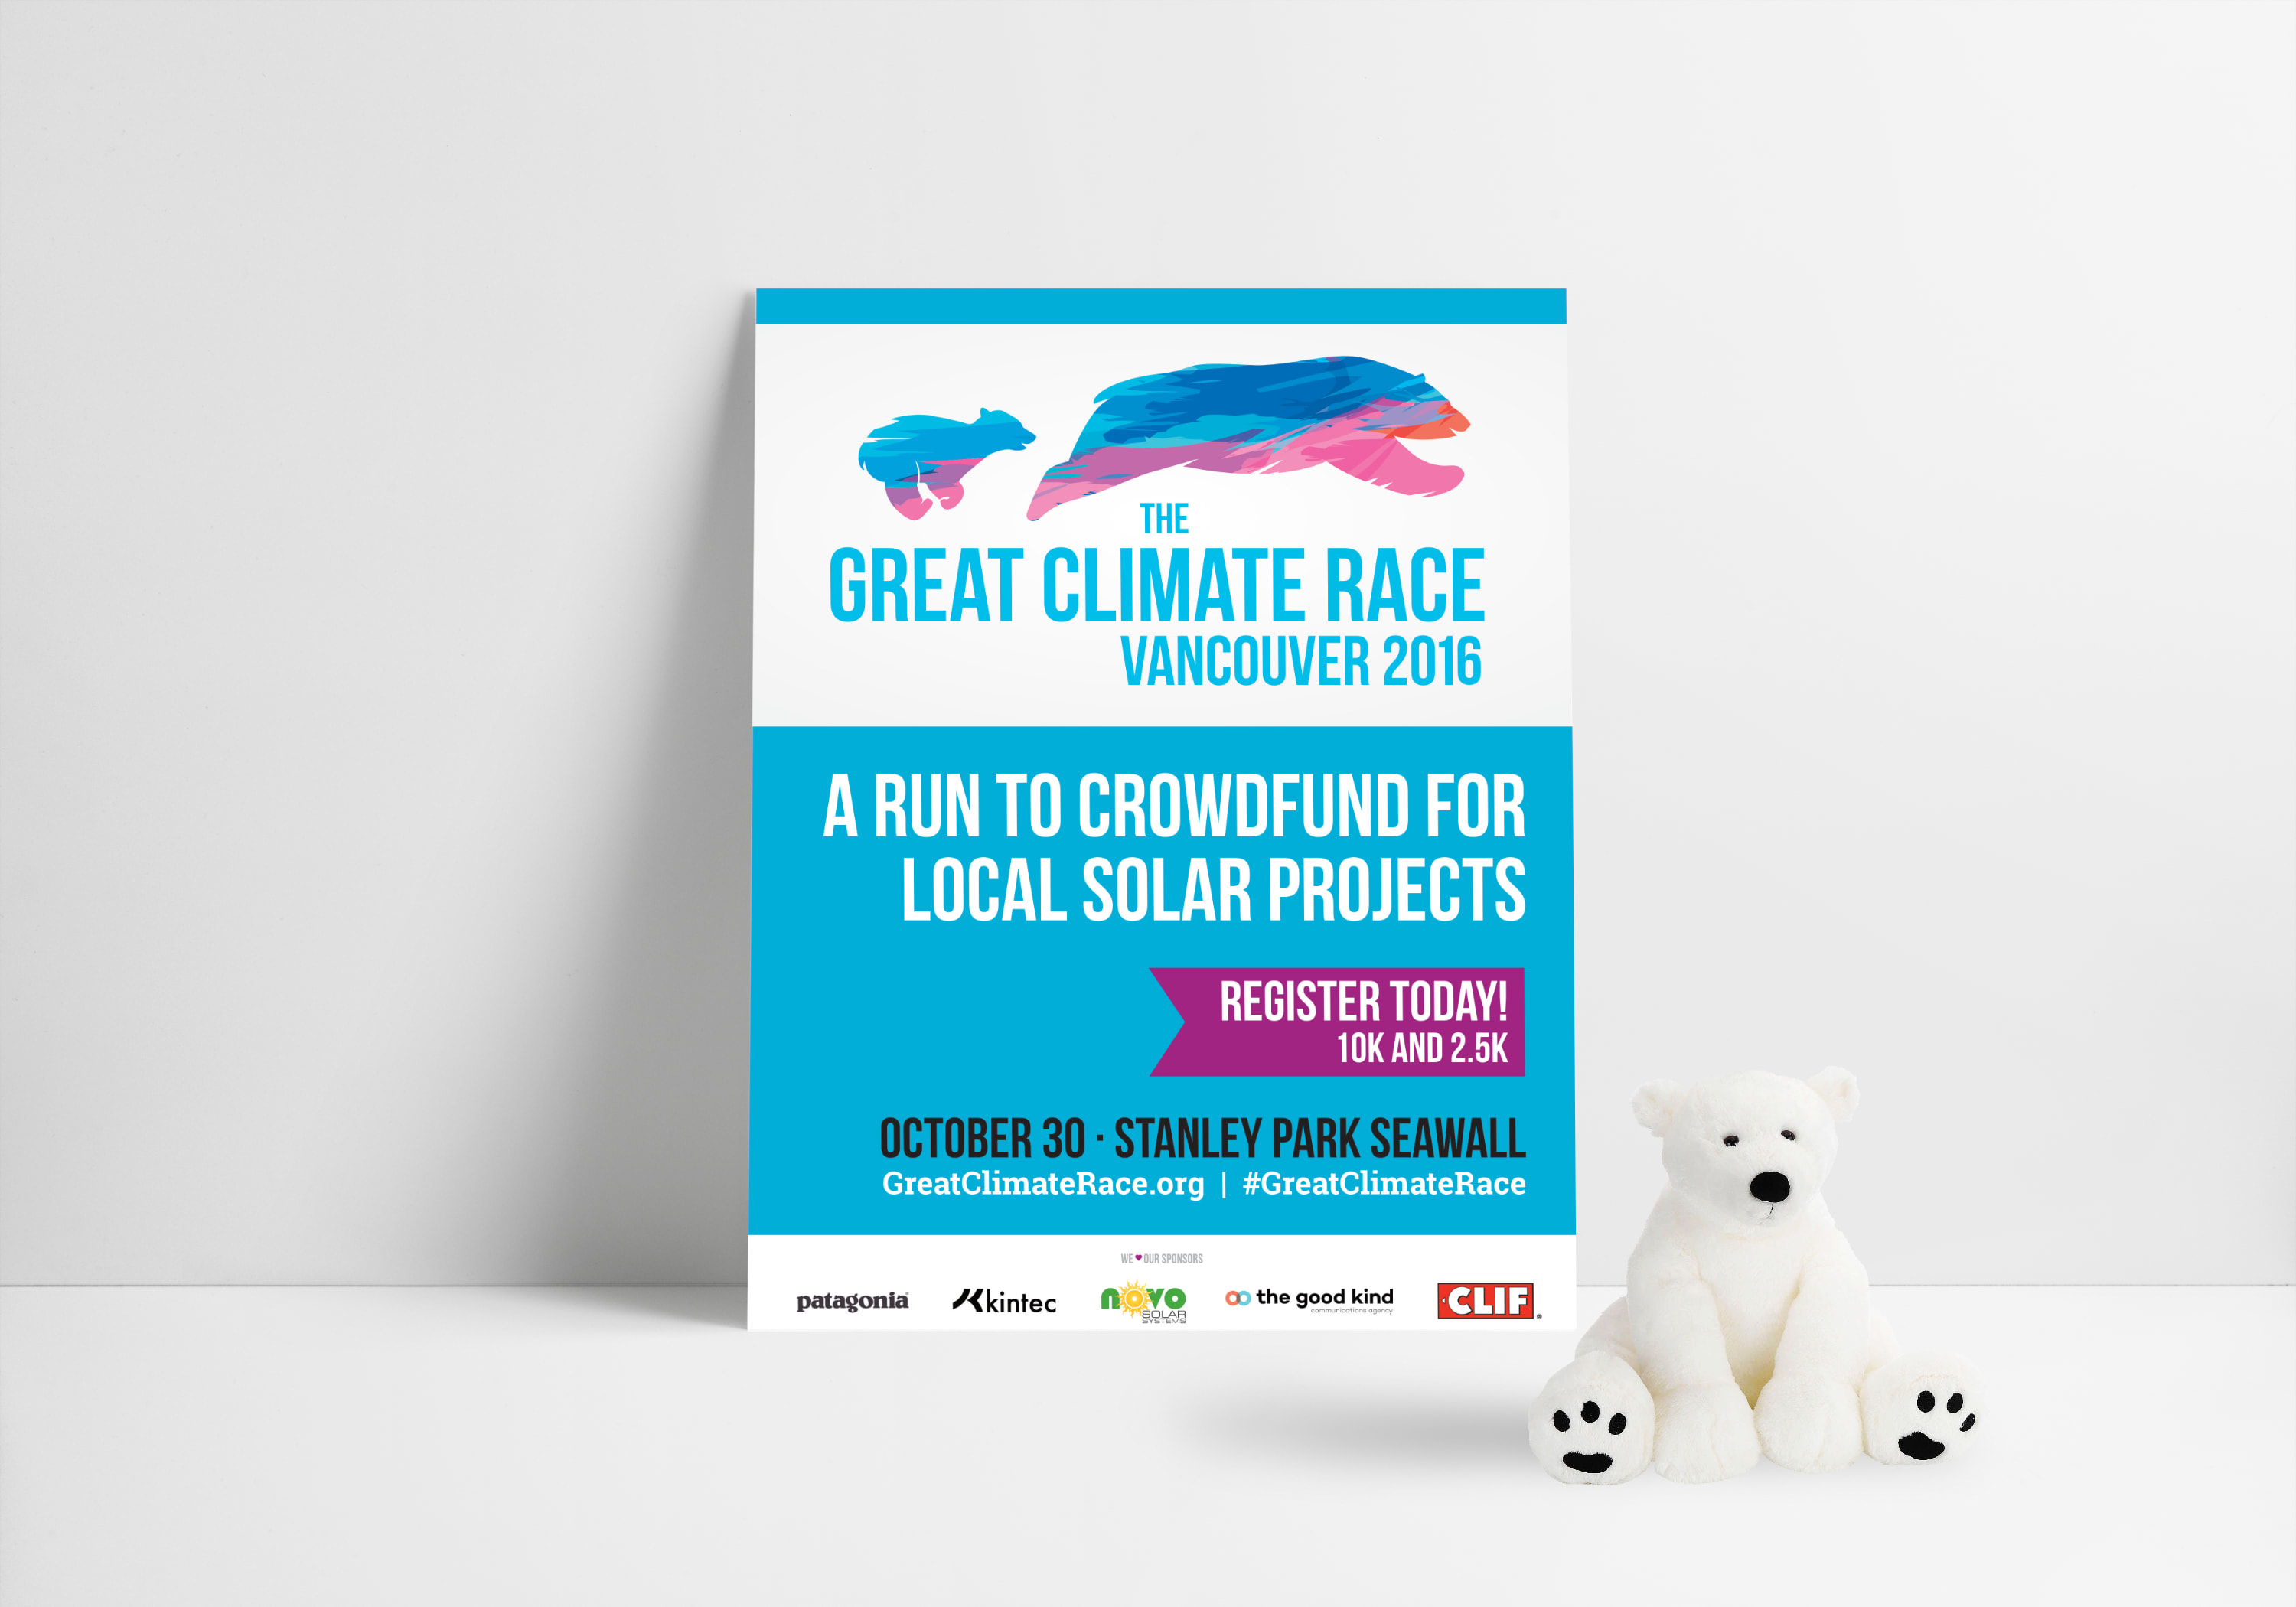 After just 2 years and over $50,000 raised for clean energy projects, the Great Climate Race is one of Vancouver's most enjoyed race events. The race pulls a diverse crowd of hardcore runners as well as families with kids, racing to raise money to fund solar energy projects.A unique event in its own right.